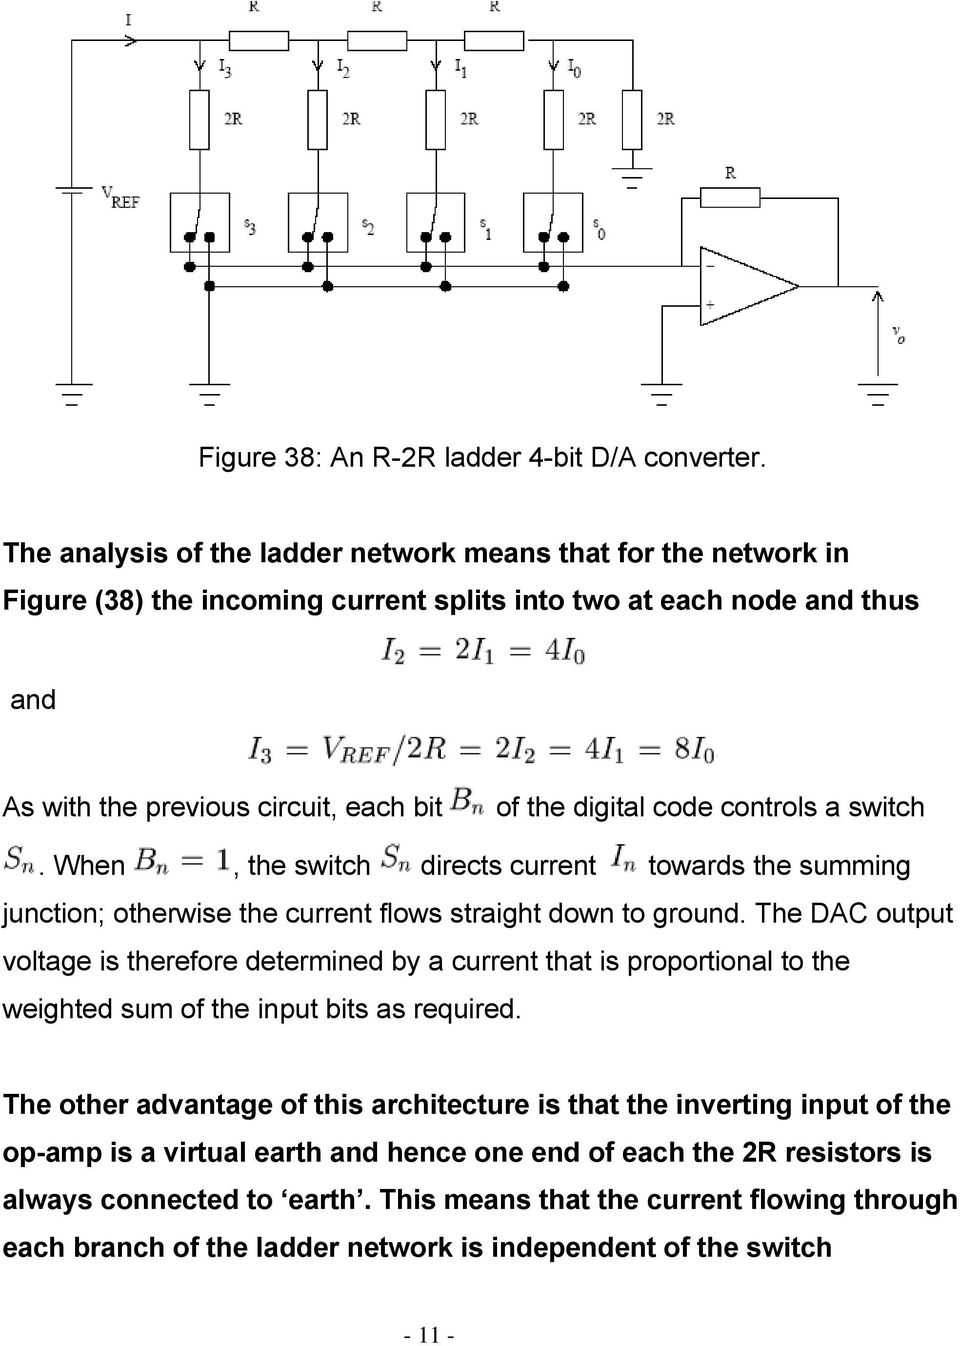 Digital To Analogue And Conversion Pdf R 2r Ladder Dac Circuit Diagram Controls A Switch When The Directs Current Towards Summing Junction Otherwise